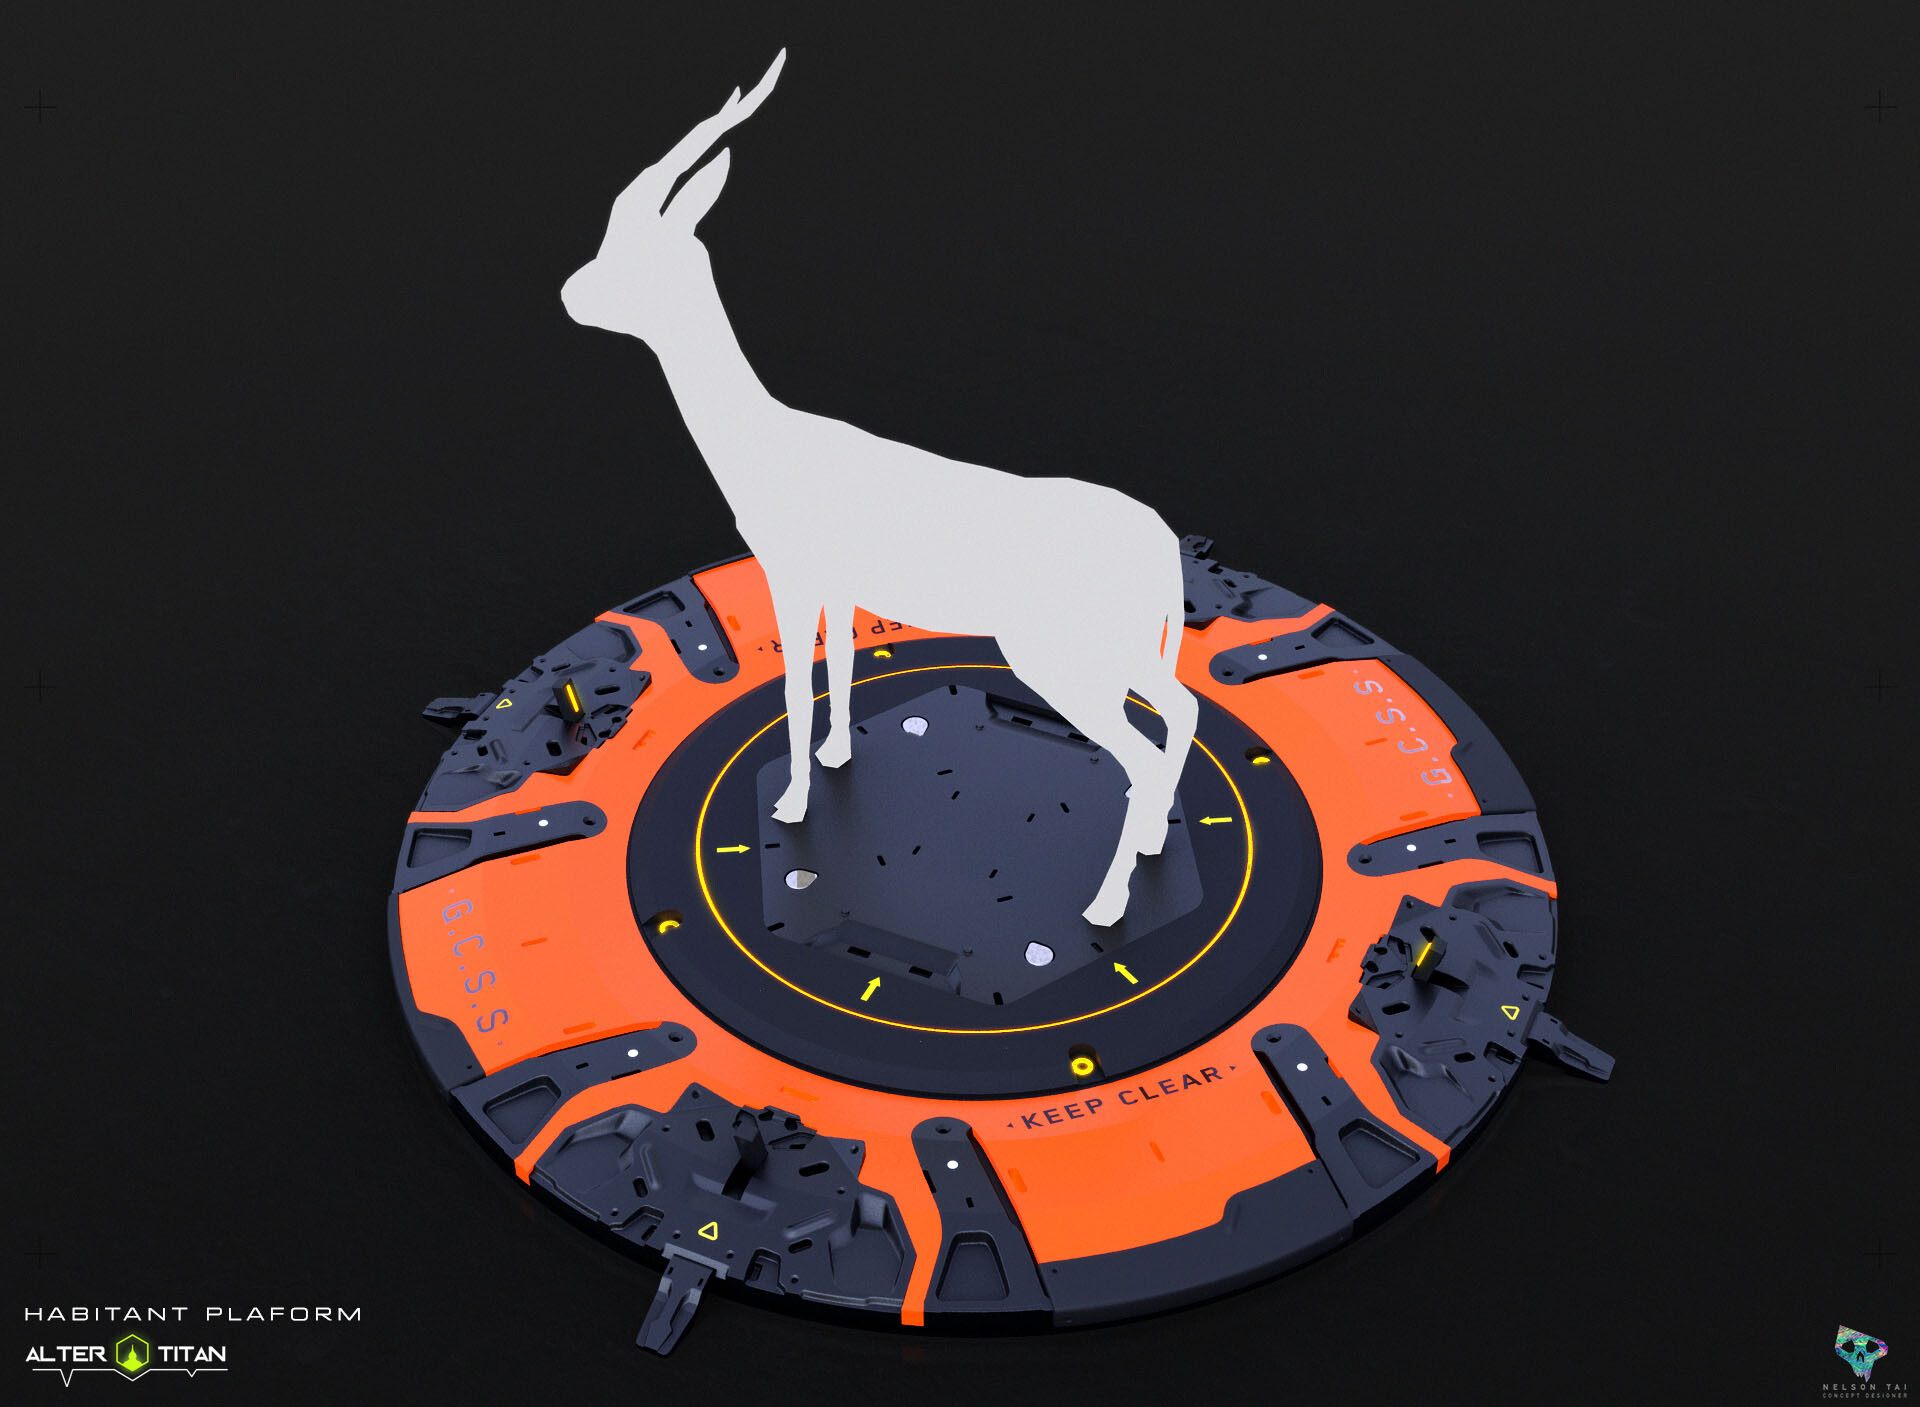 Platforms would also be used on maps to indicate creature locations.